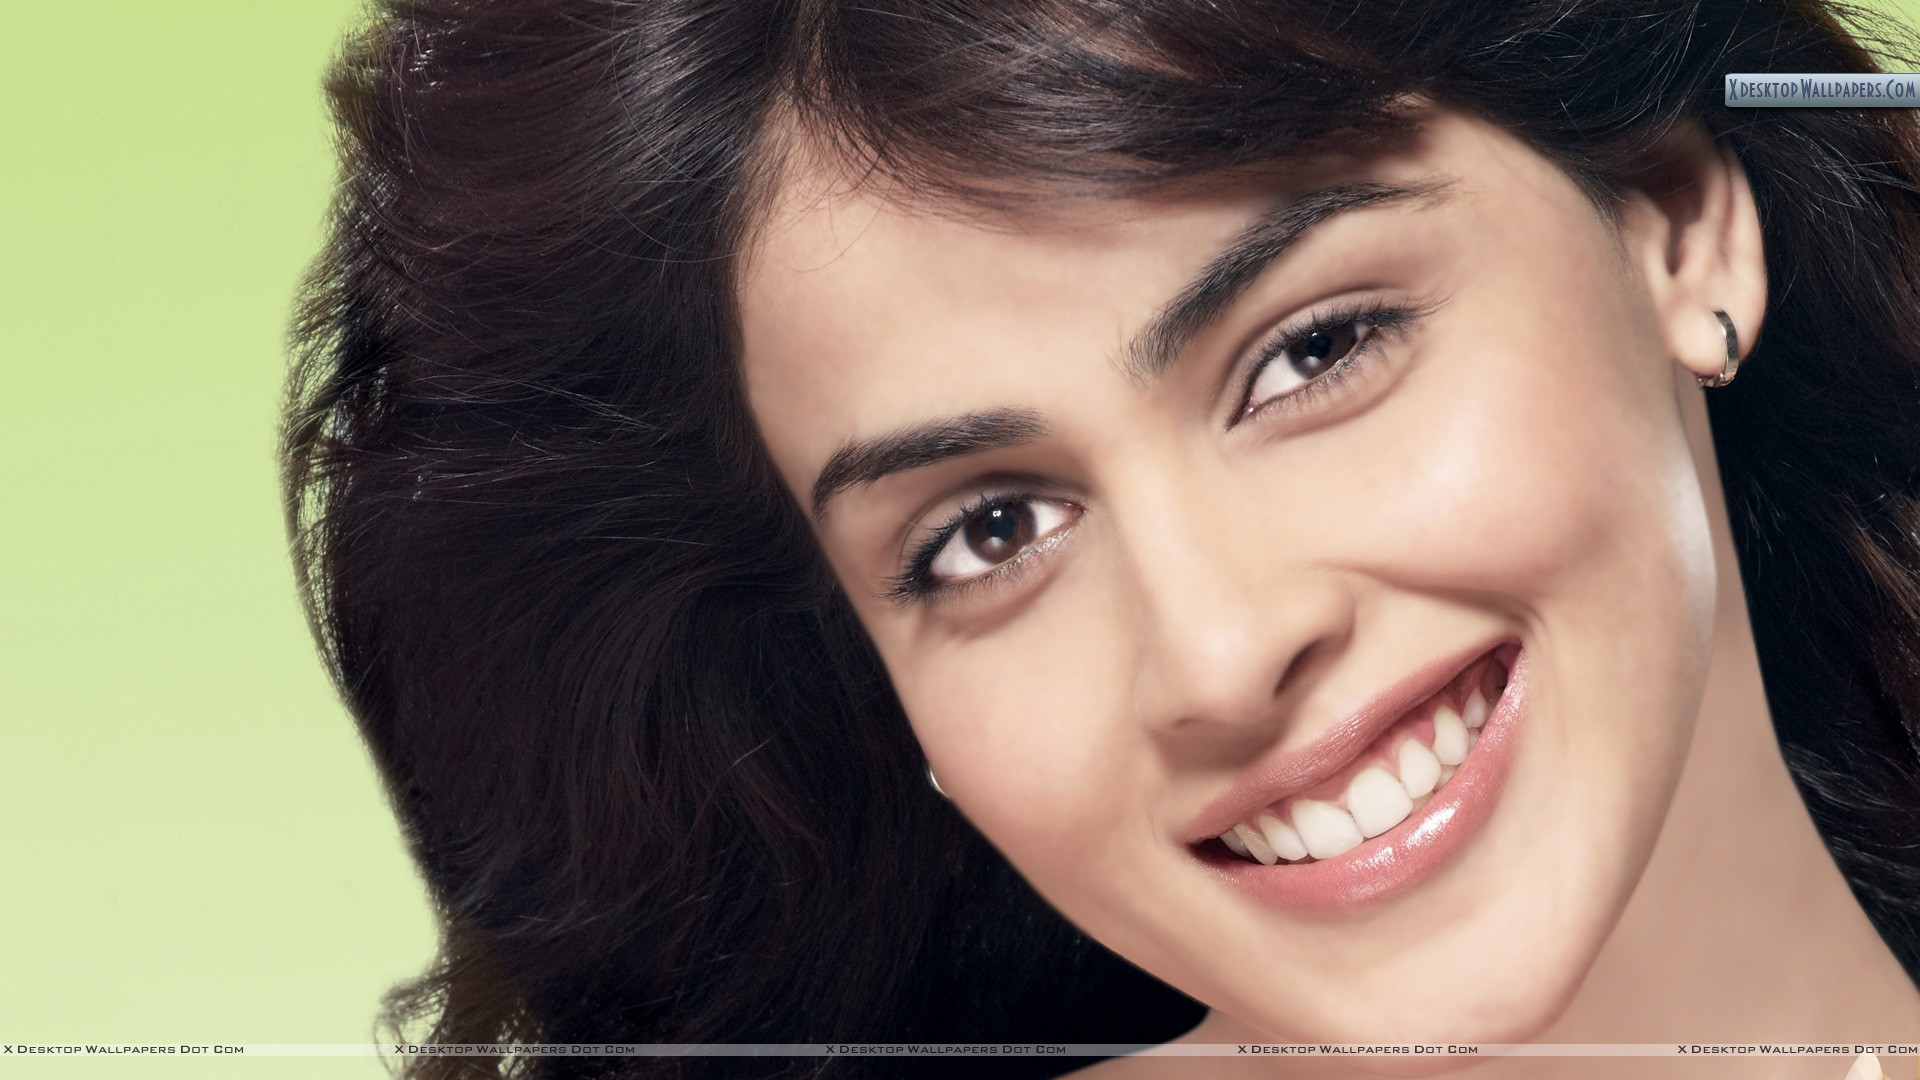 Genelia D Souza Wallpapers 30 Hd Pics: Genelia Dsouza New Wallpapers Photos Hd Wallpapers